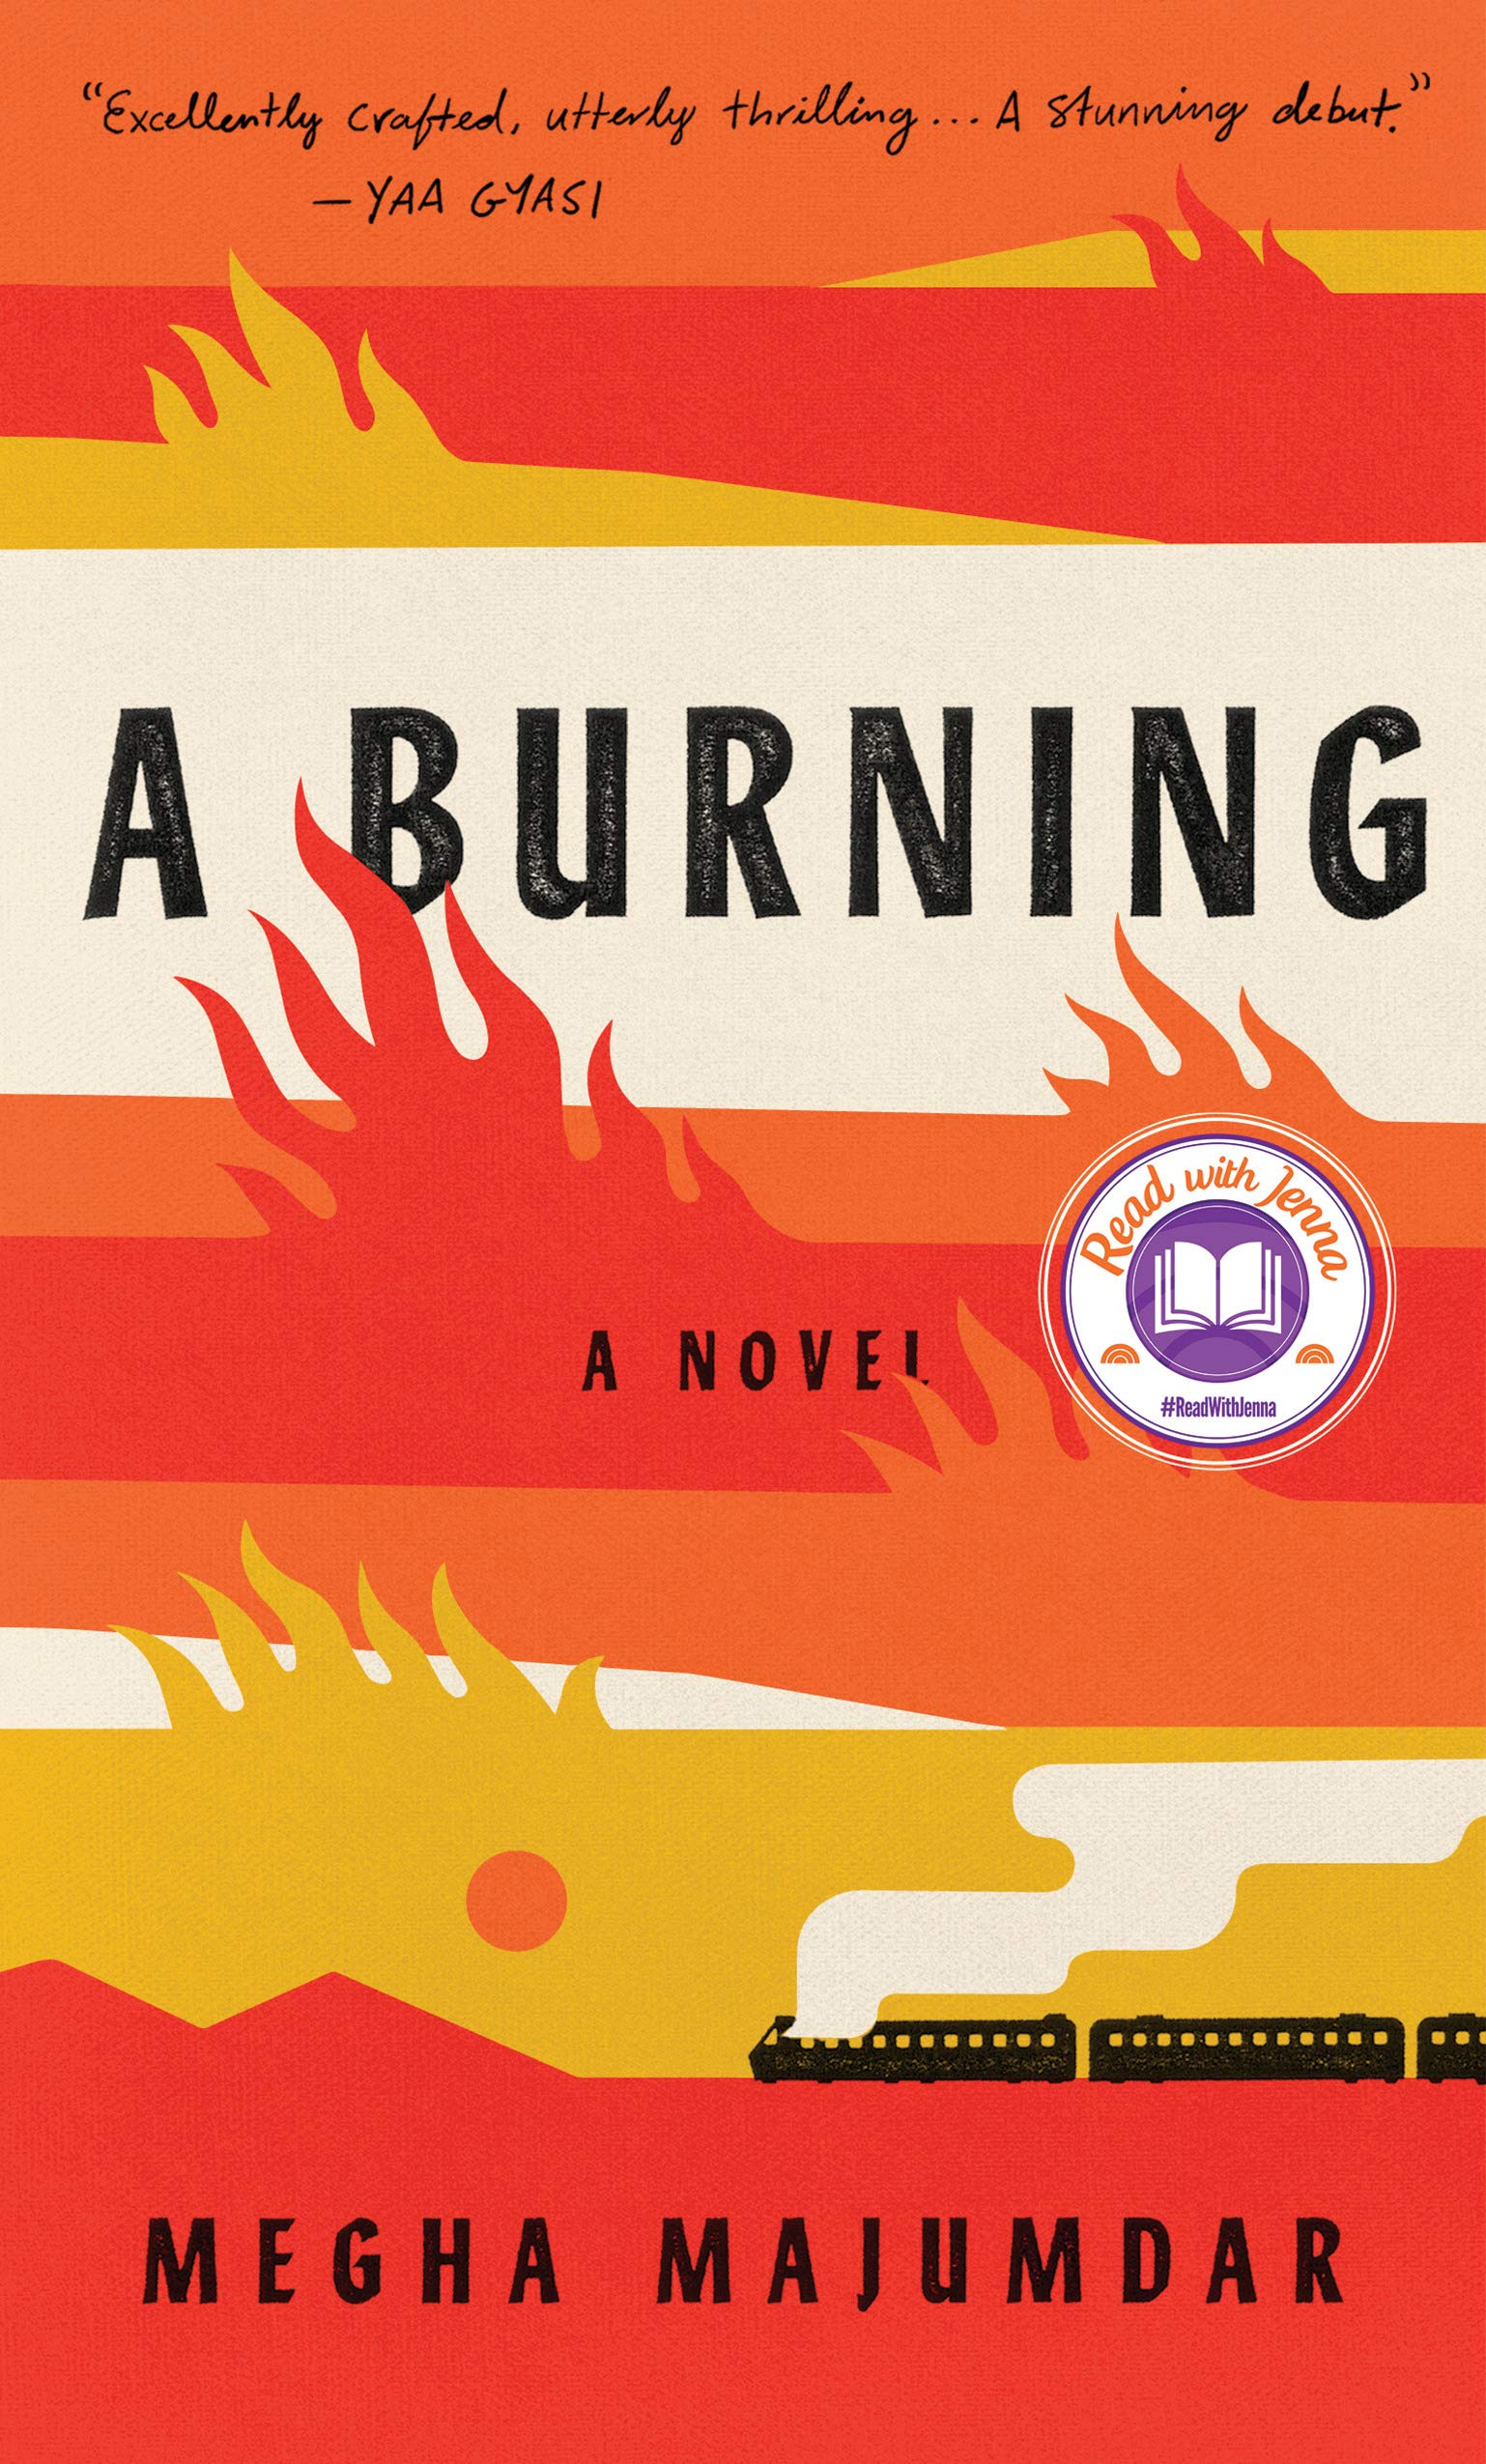 A Burning: A novel: Majumdar, Megha: 9780525658696: Amazon.com: Books